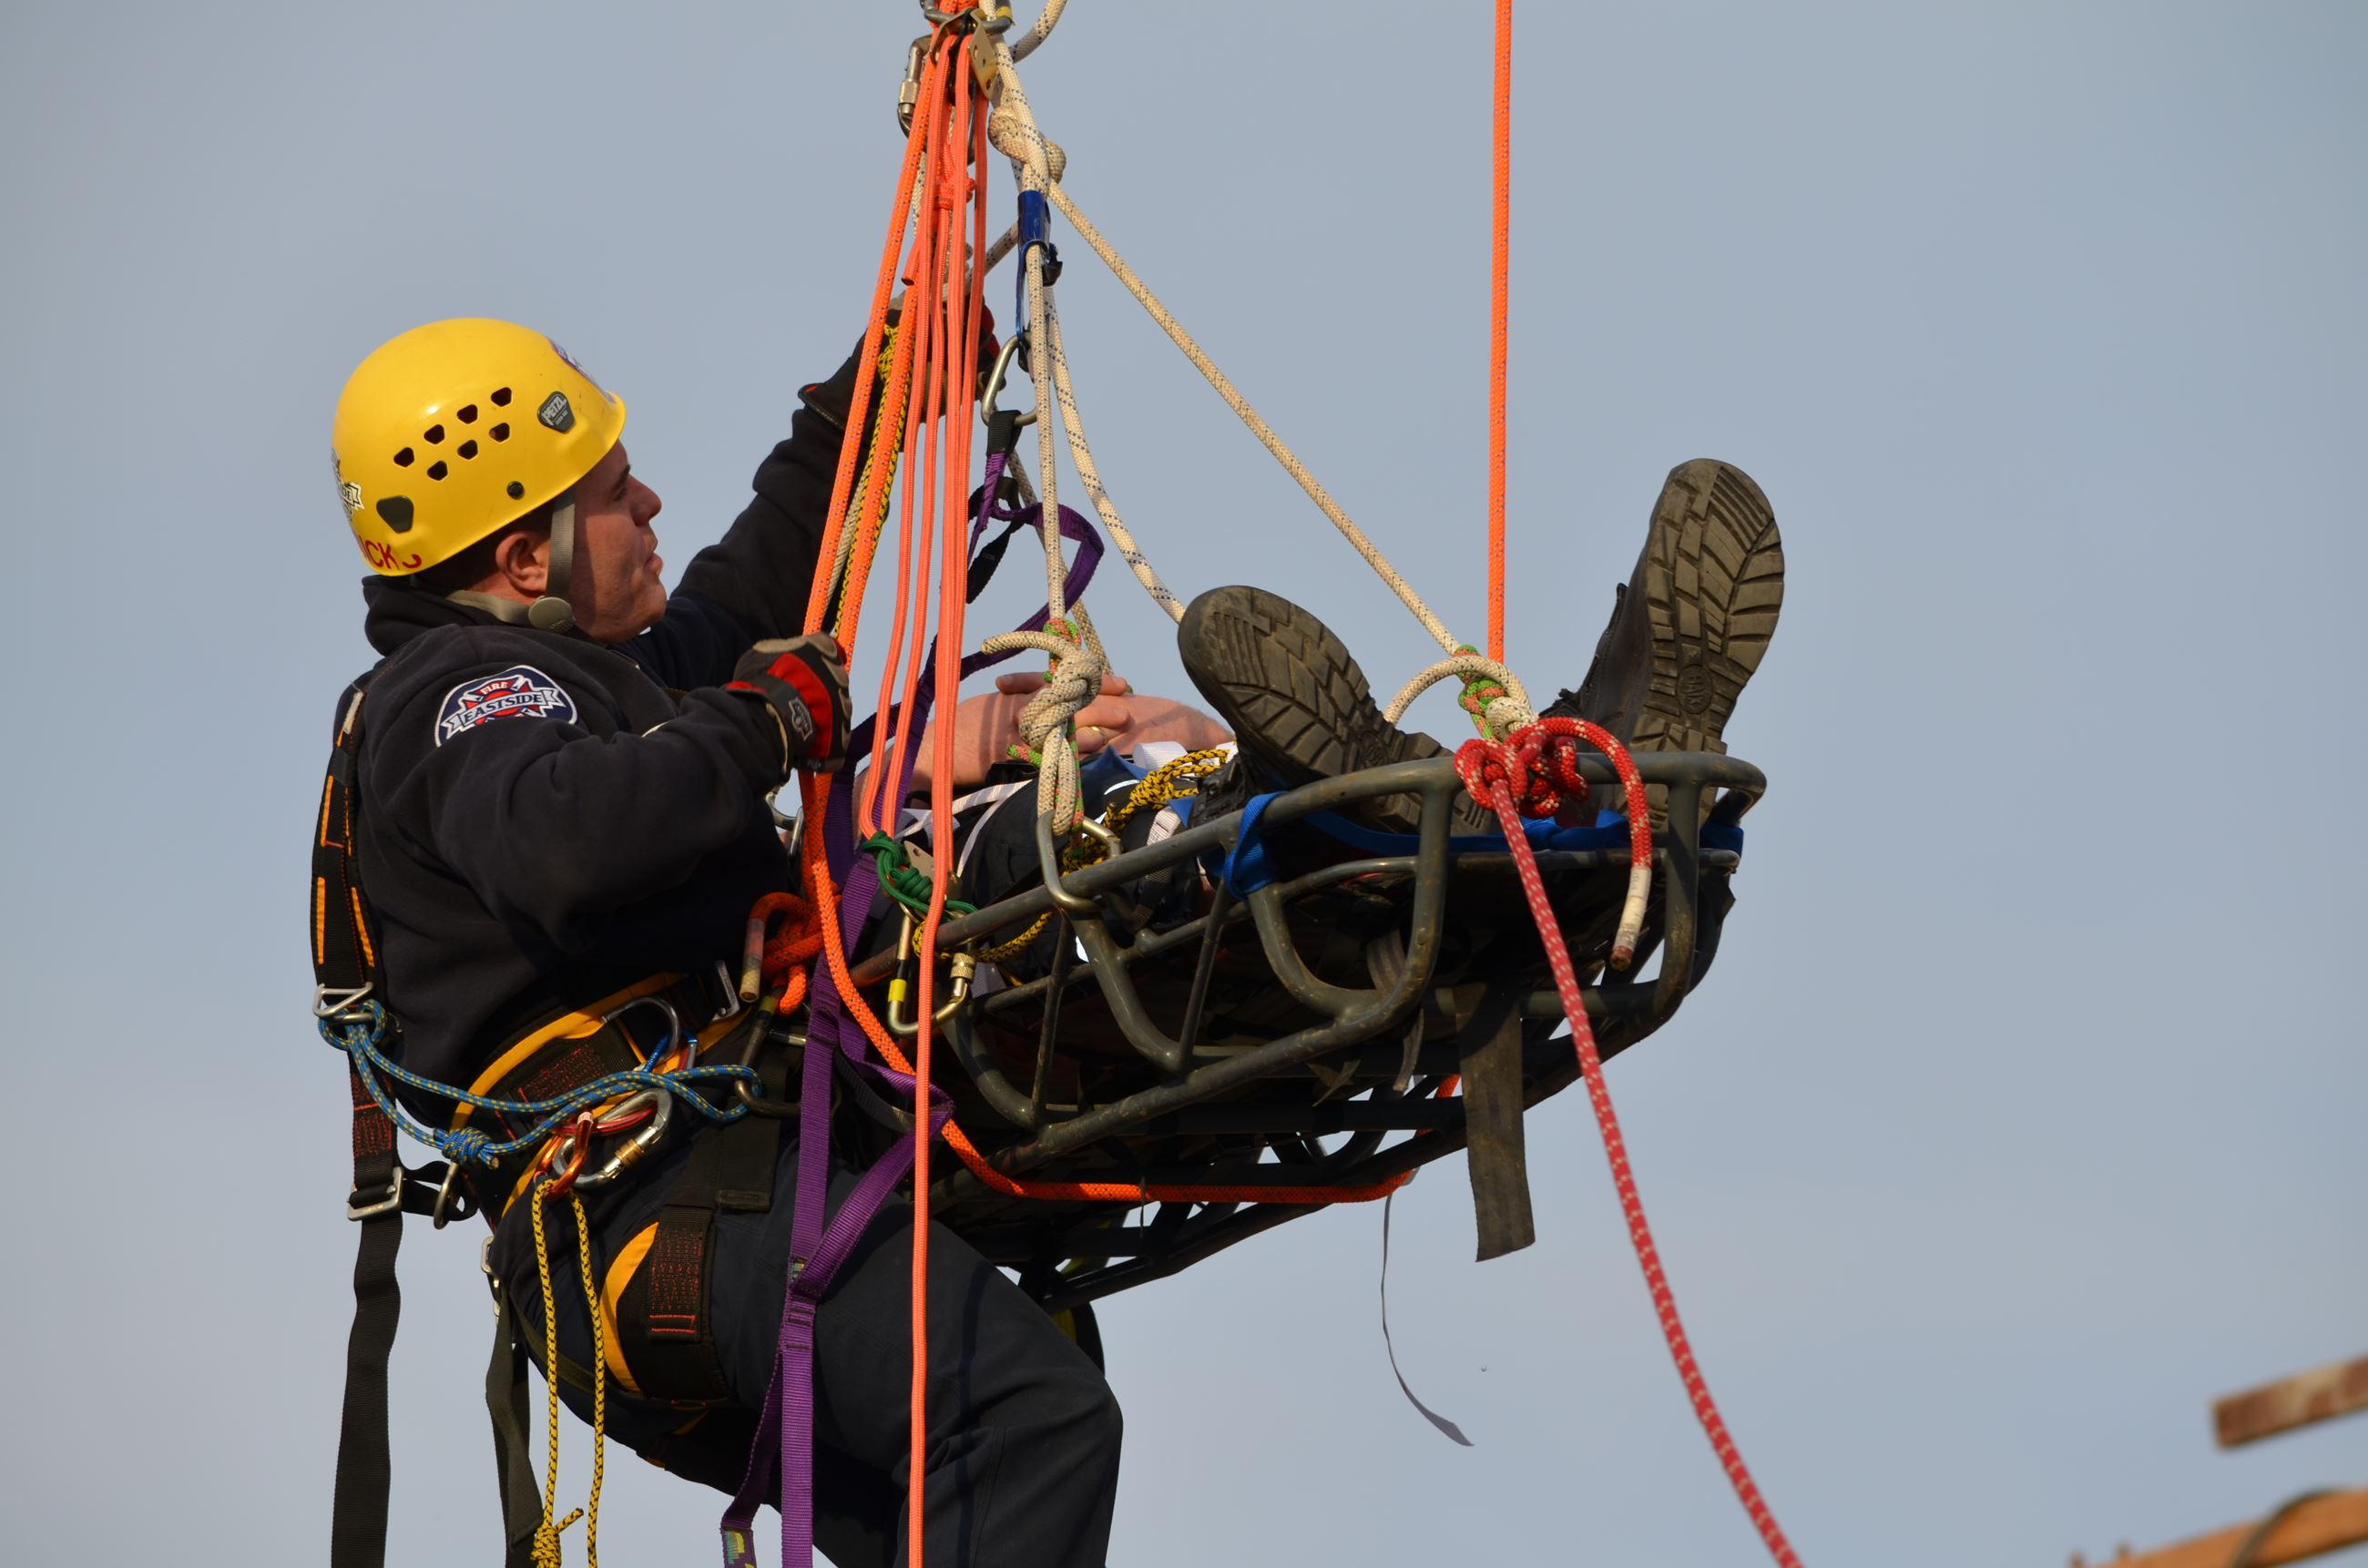 firefighters performing ropes rescue